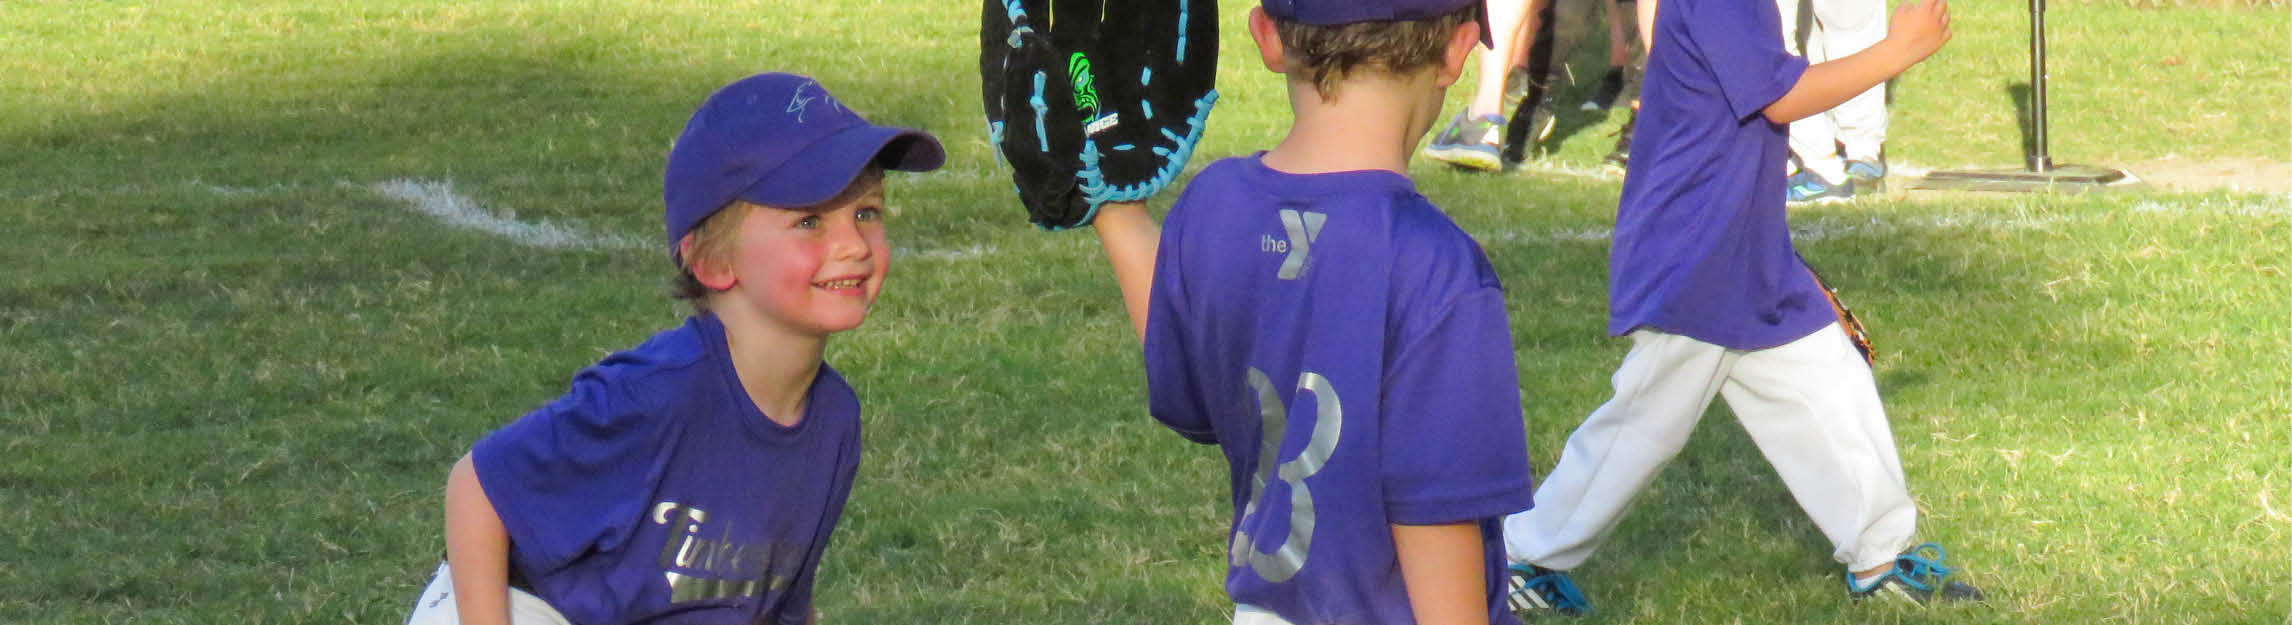 Youth Baseball participant smiling in a purple jersey and baseball cap